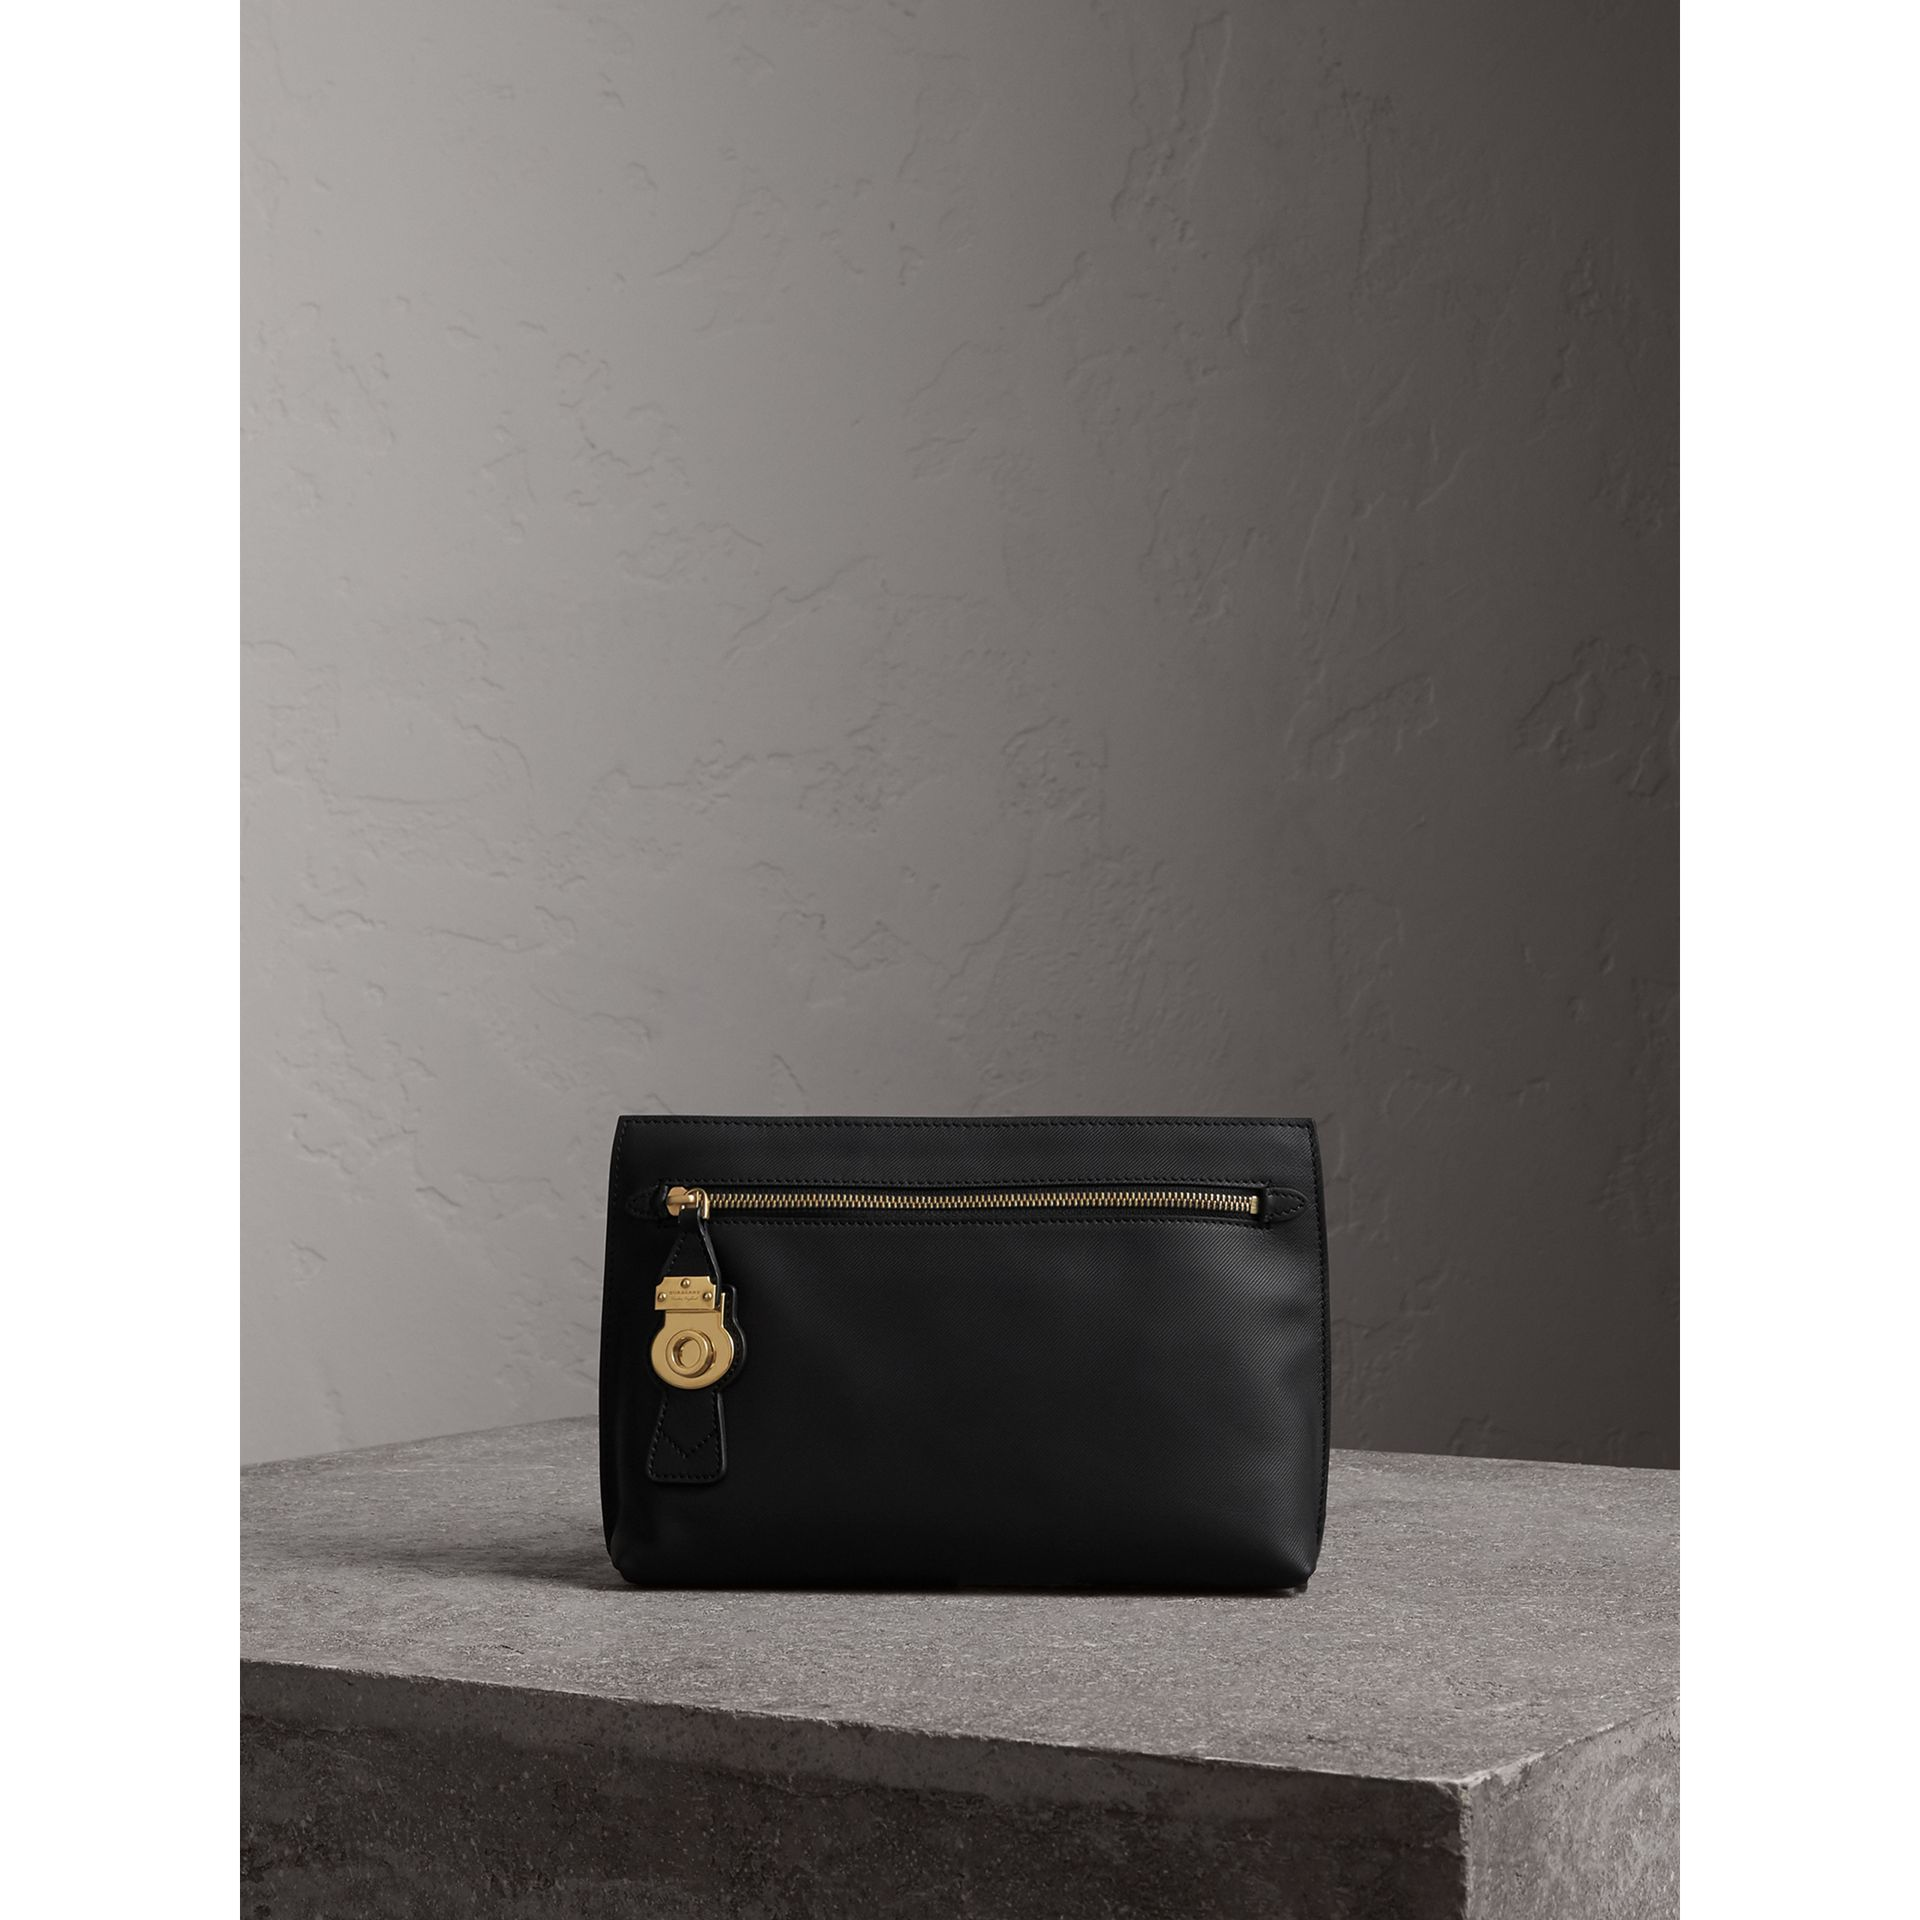 Trench Leather Wristlet Pouch in Black - Women | Burberry - gallery image 1